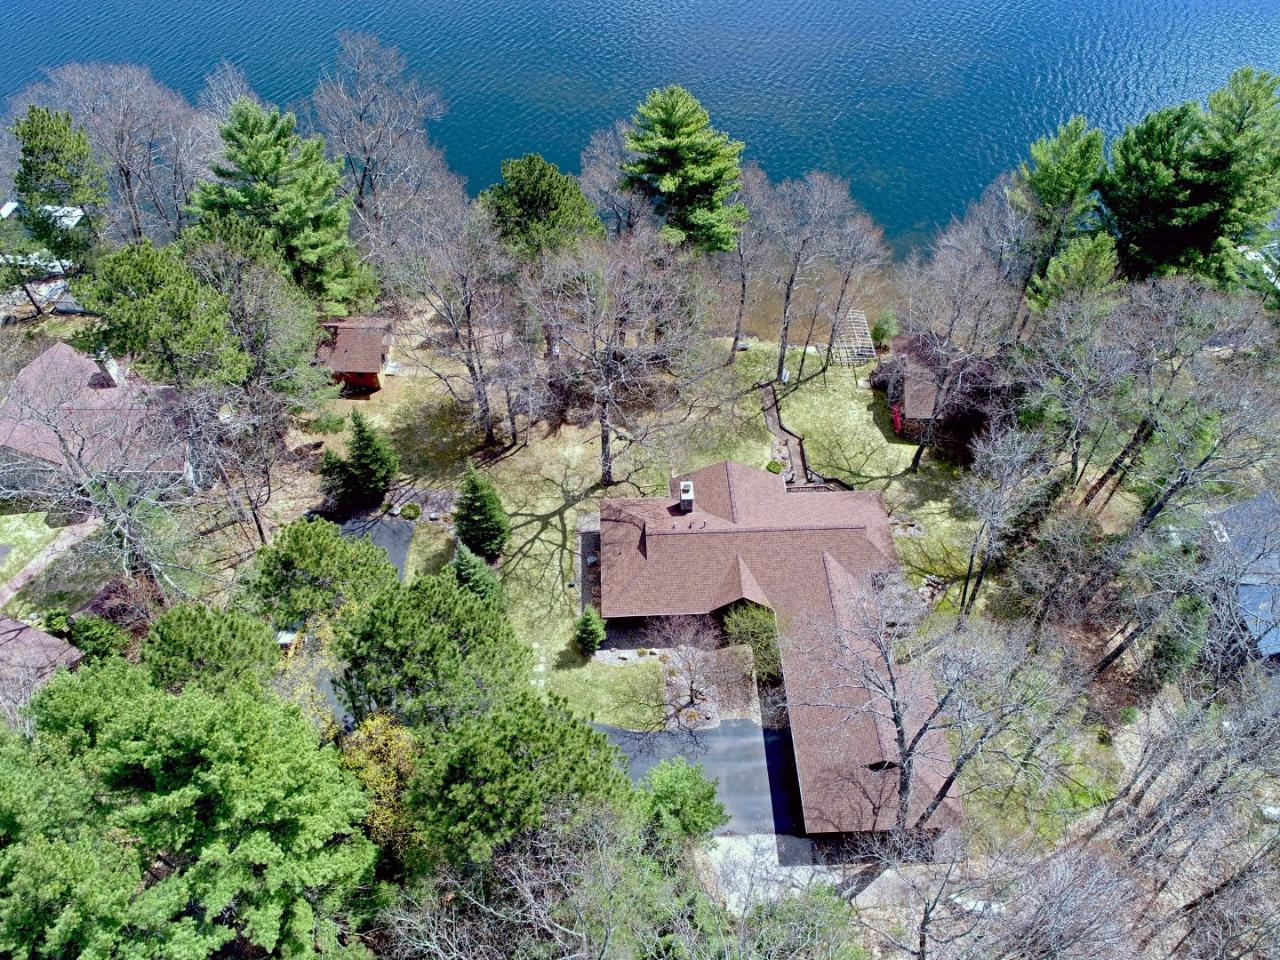 Gorgeous 4BR, 3BA main home on the Minocqua Lake Chain with an added bonus of two guest cabins. Enjoy 223' of sandy frontage on Lake Kawaguesaga with a level and beautifully landscaped yard. Plenty of storage for extra toys & vehicles. Thoughtfully laid out property with a private setting for maximum relaxation at the lake.